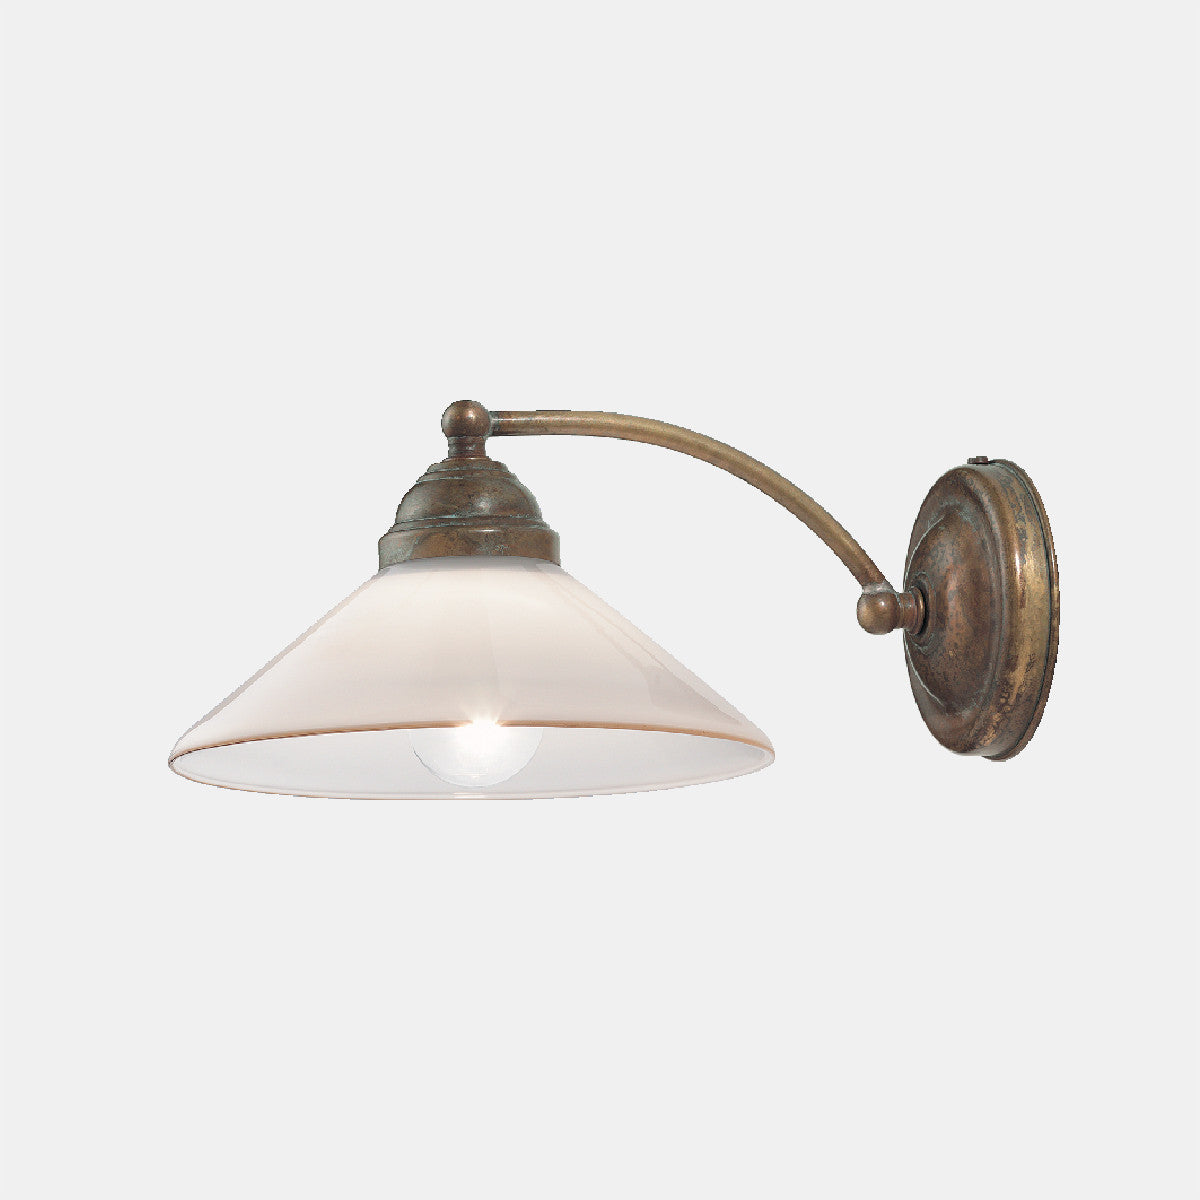 COUNTRY Wall Light 081.17.OV